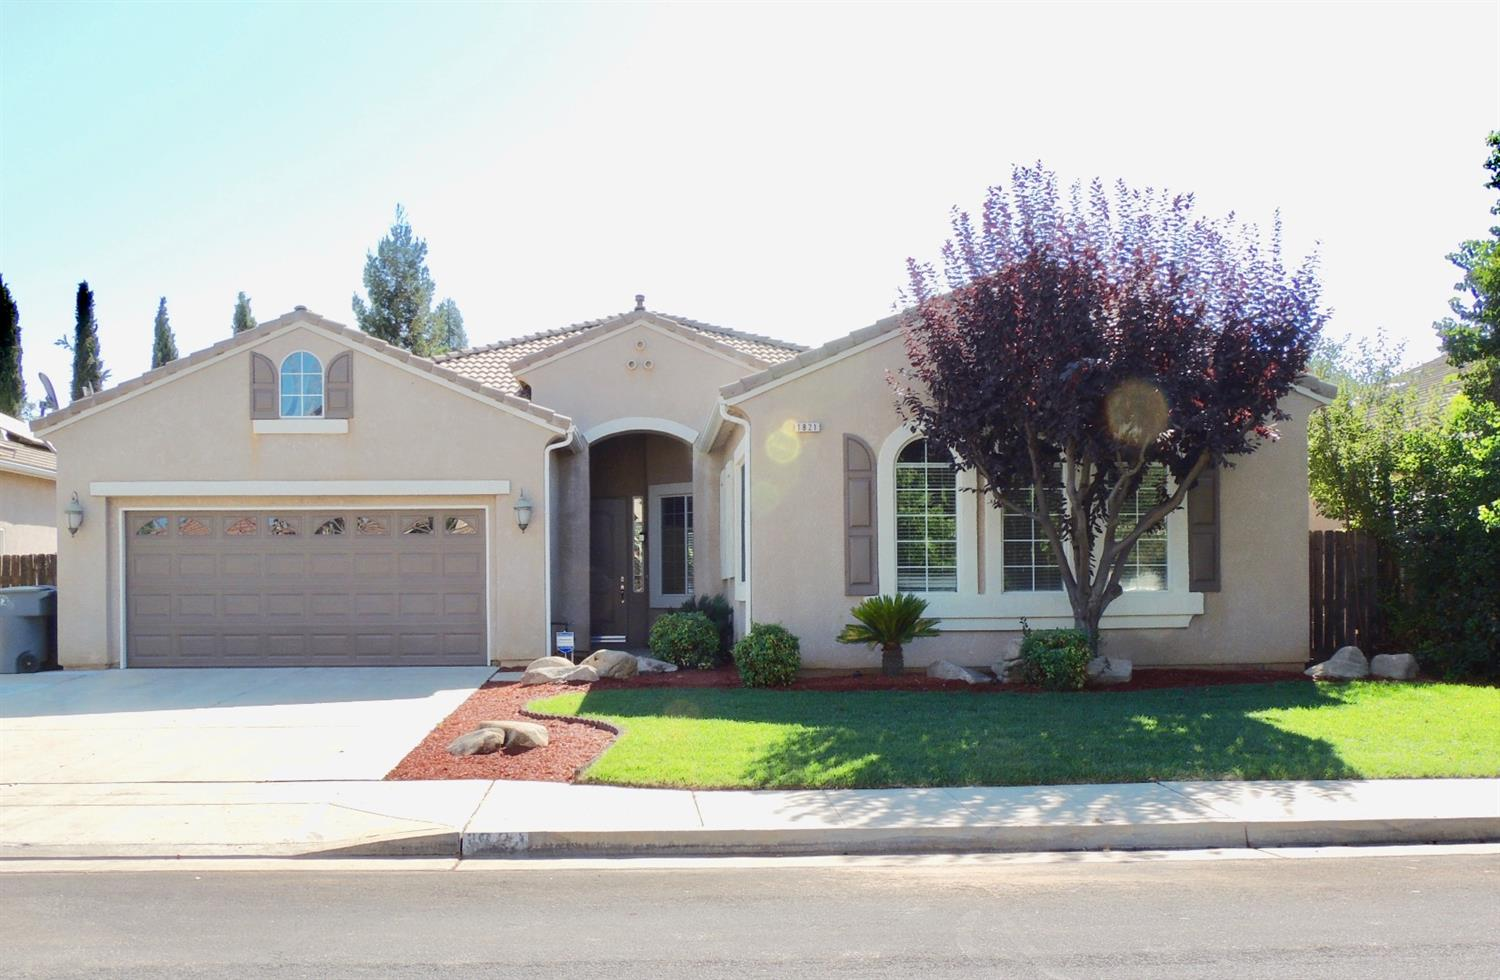 Fresno Real Estate - Fresno Properties for Sale